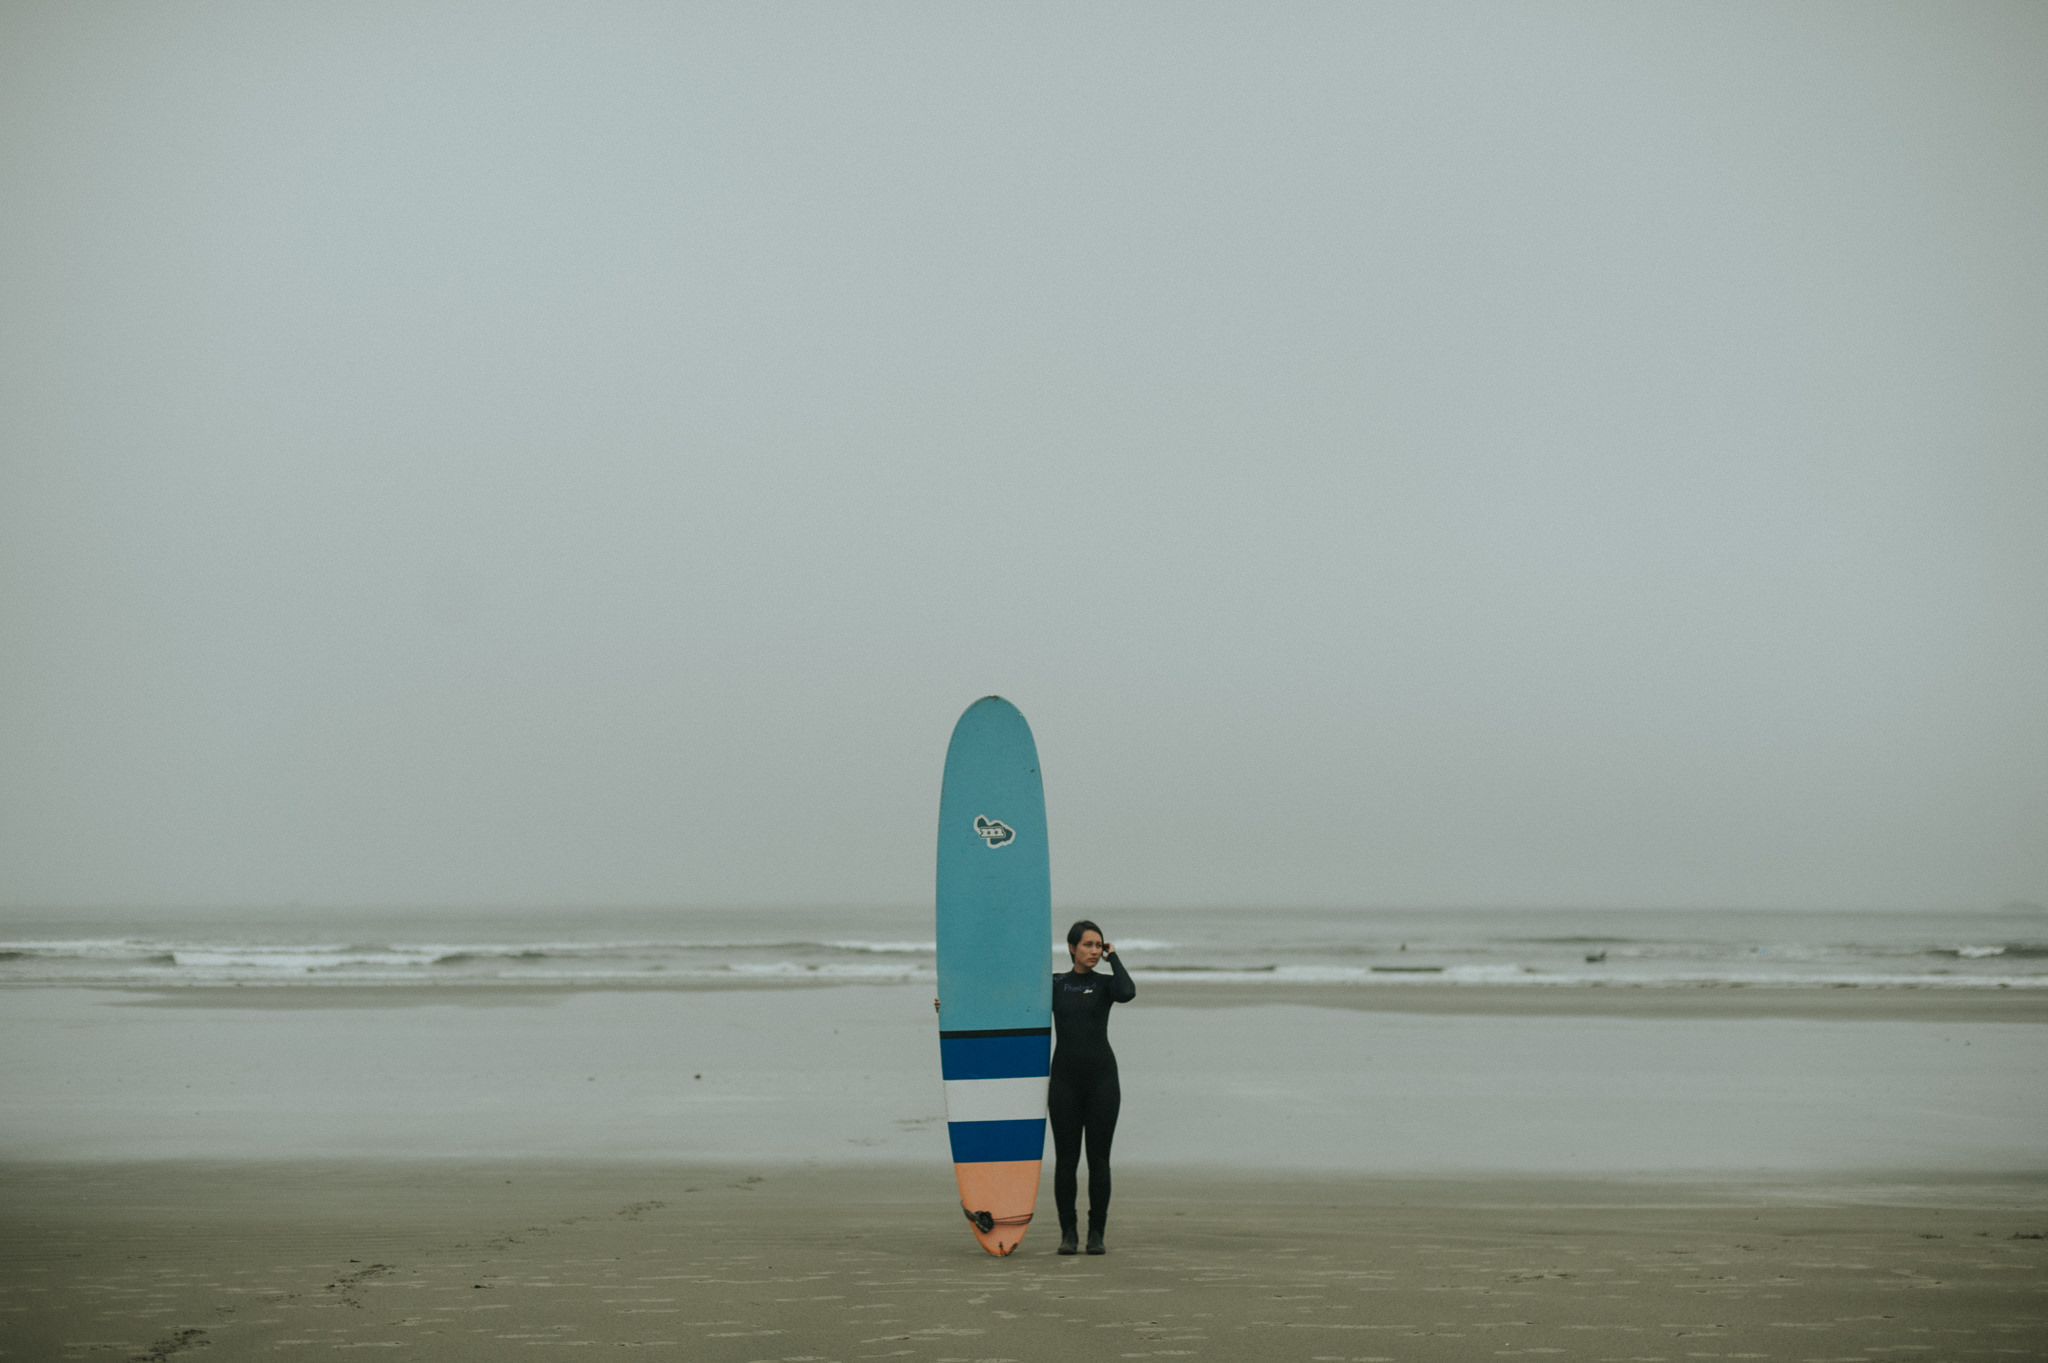 Surfing at Cox Bay in Tofino